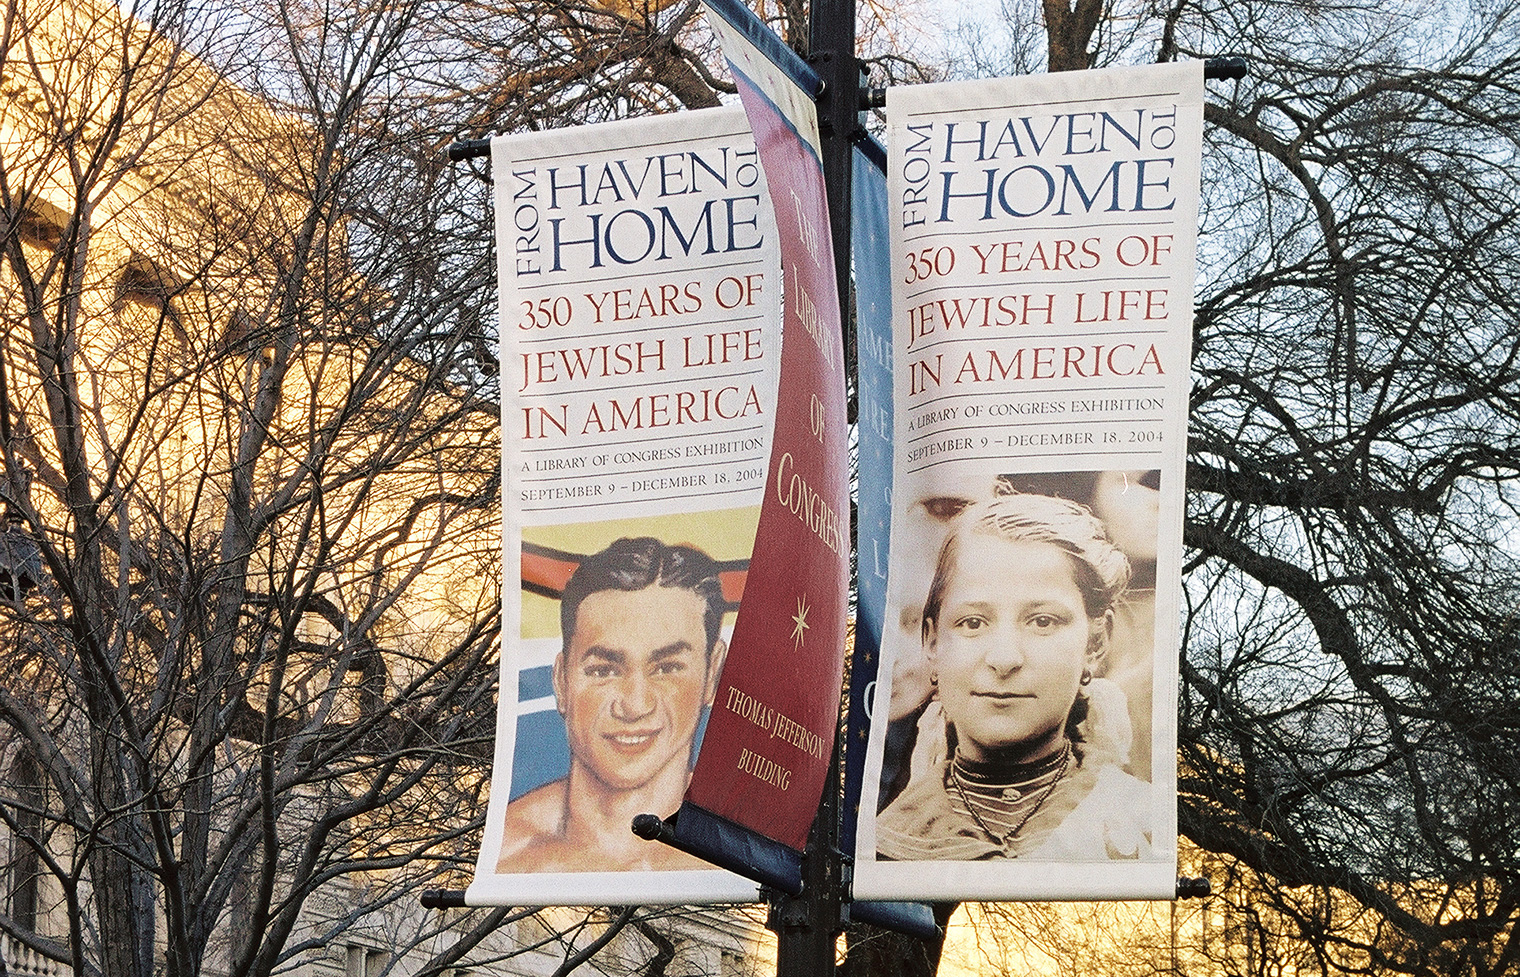 Lamppost banners.